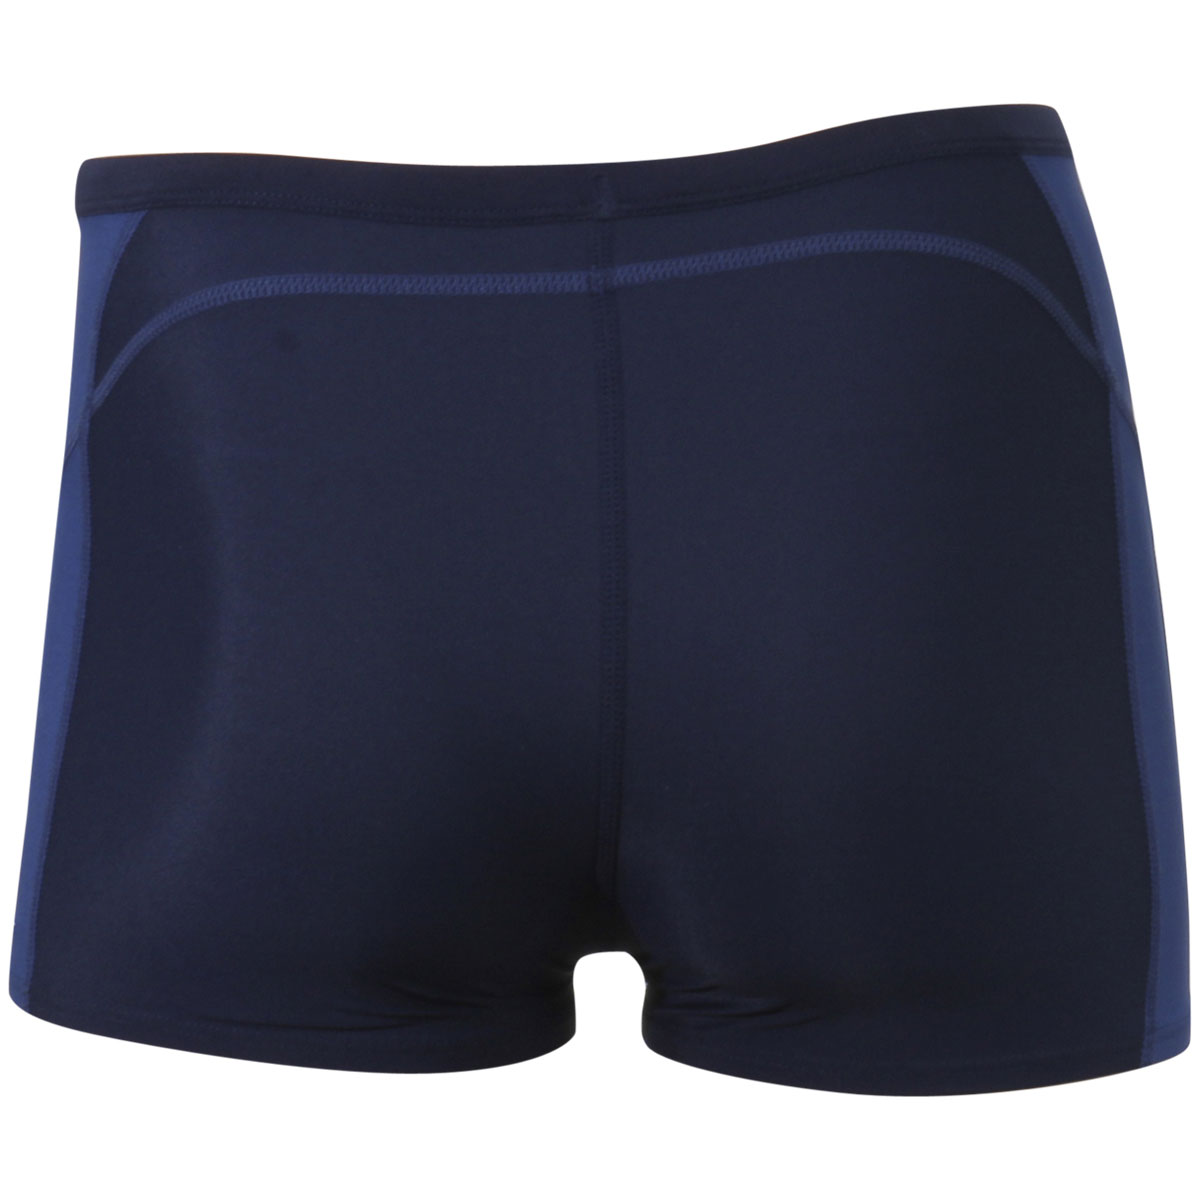 531ed45091 Nike Men's Sz 30 Poly Core Solids Square Leg Performance Swimwear Navy Fast  A39. About this product. Picture 1 of 4; Picture 2 of 4; Picture 3 of 4;  Picture ...